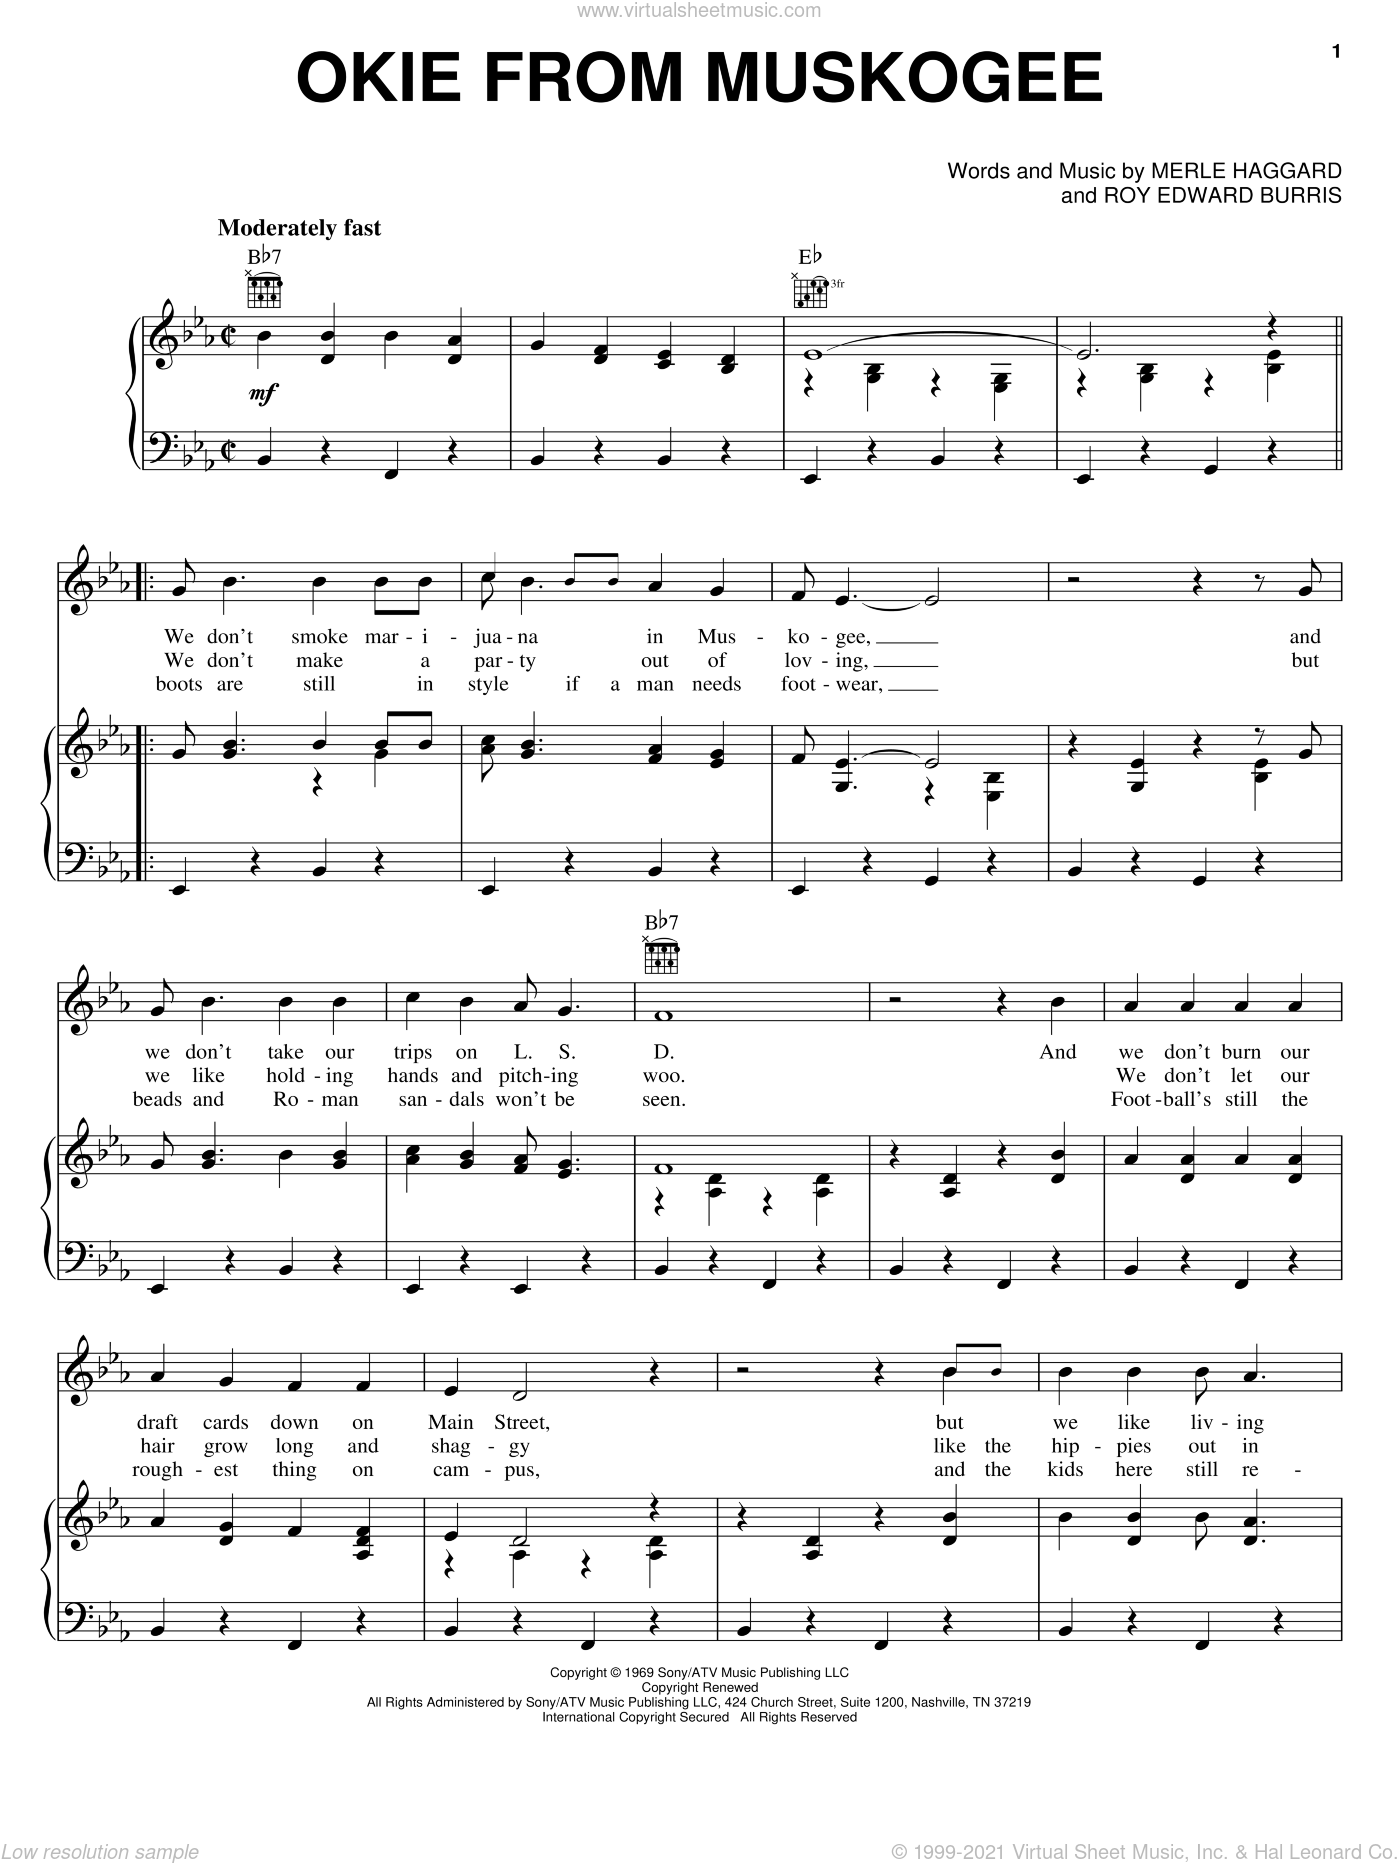 Okie From Muskogee sheet music for voice, piano or guitar by Merle Haggard and Roy Edward Burris, intermediate skill level